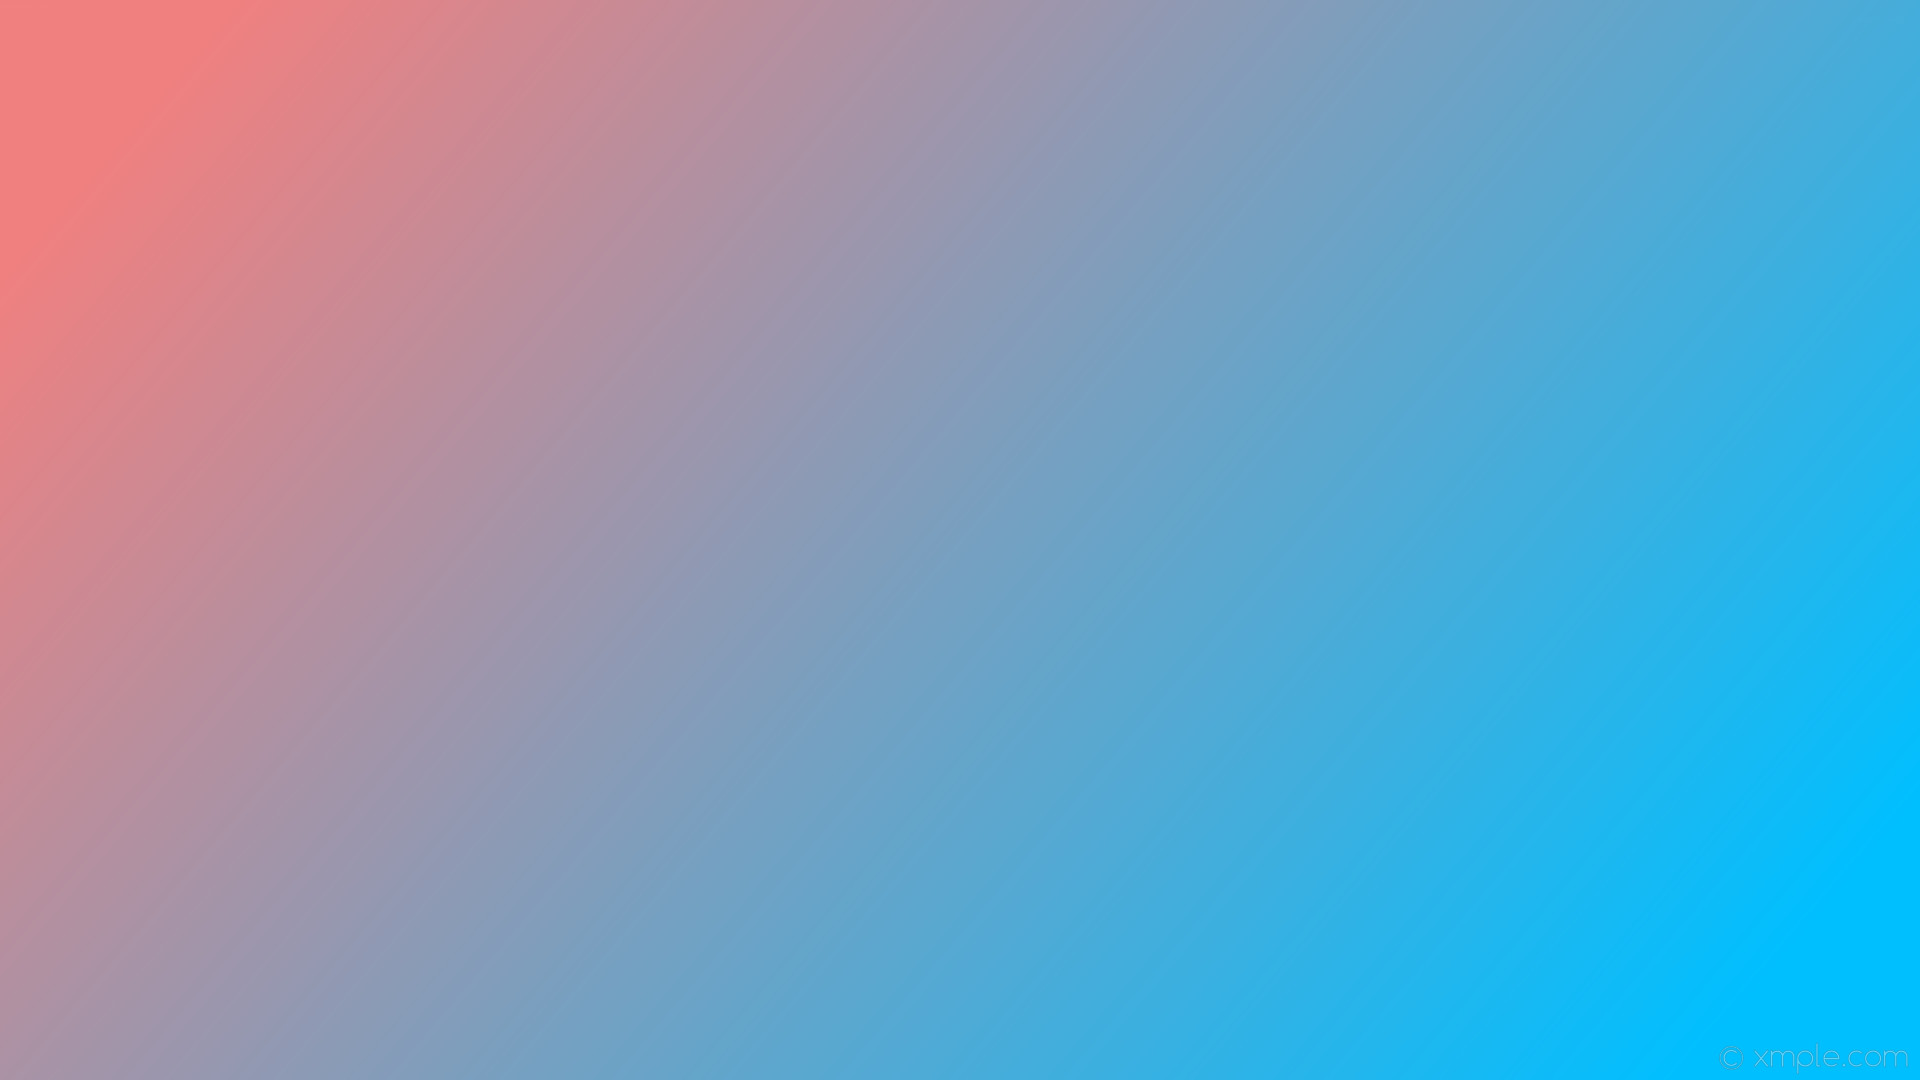 wallpaper gradient blue linear red deep sky blue light coral #00bfff  #f08080 345°